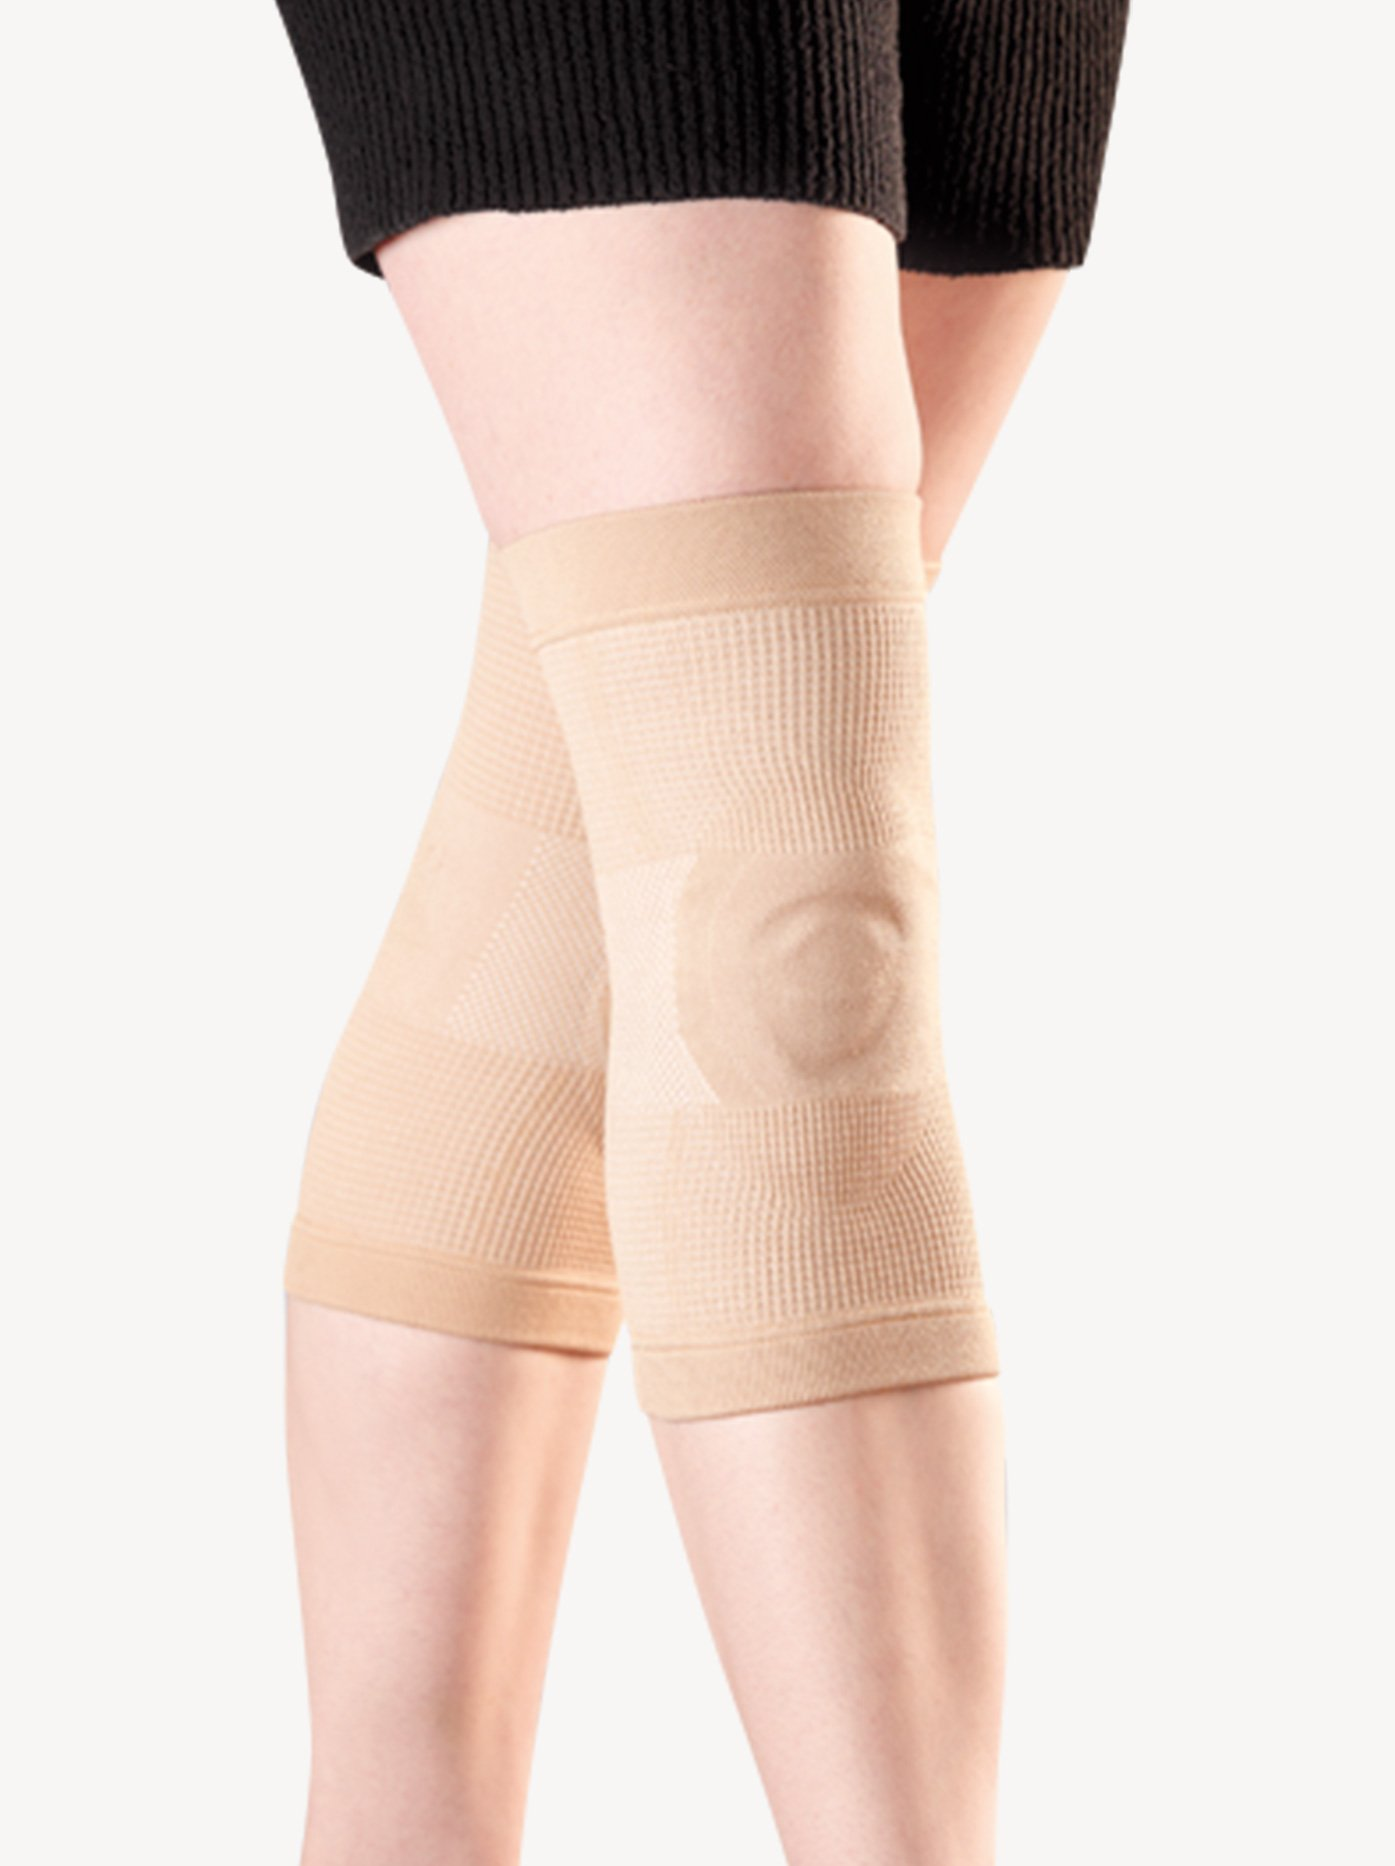 Bunheads Large Knee Support  BH1651